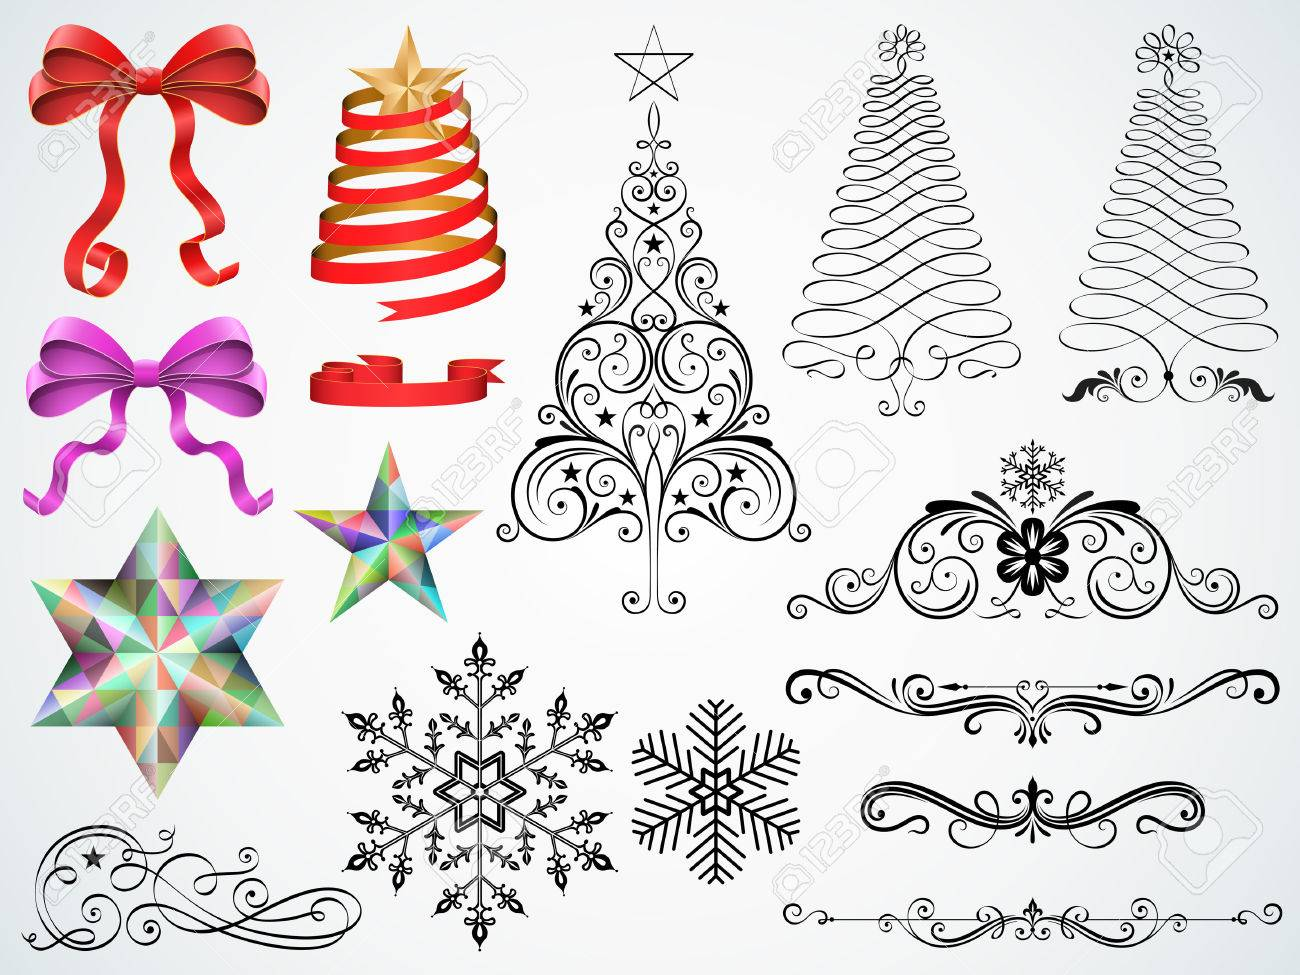 Career christmas ornaments - Set Of Christmas Ornaments And Design Elements Vector Illustration Stock Vector 45260725